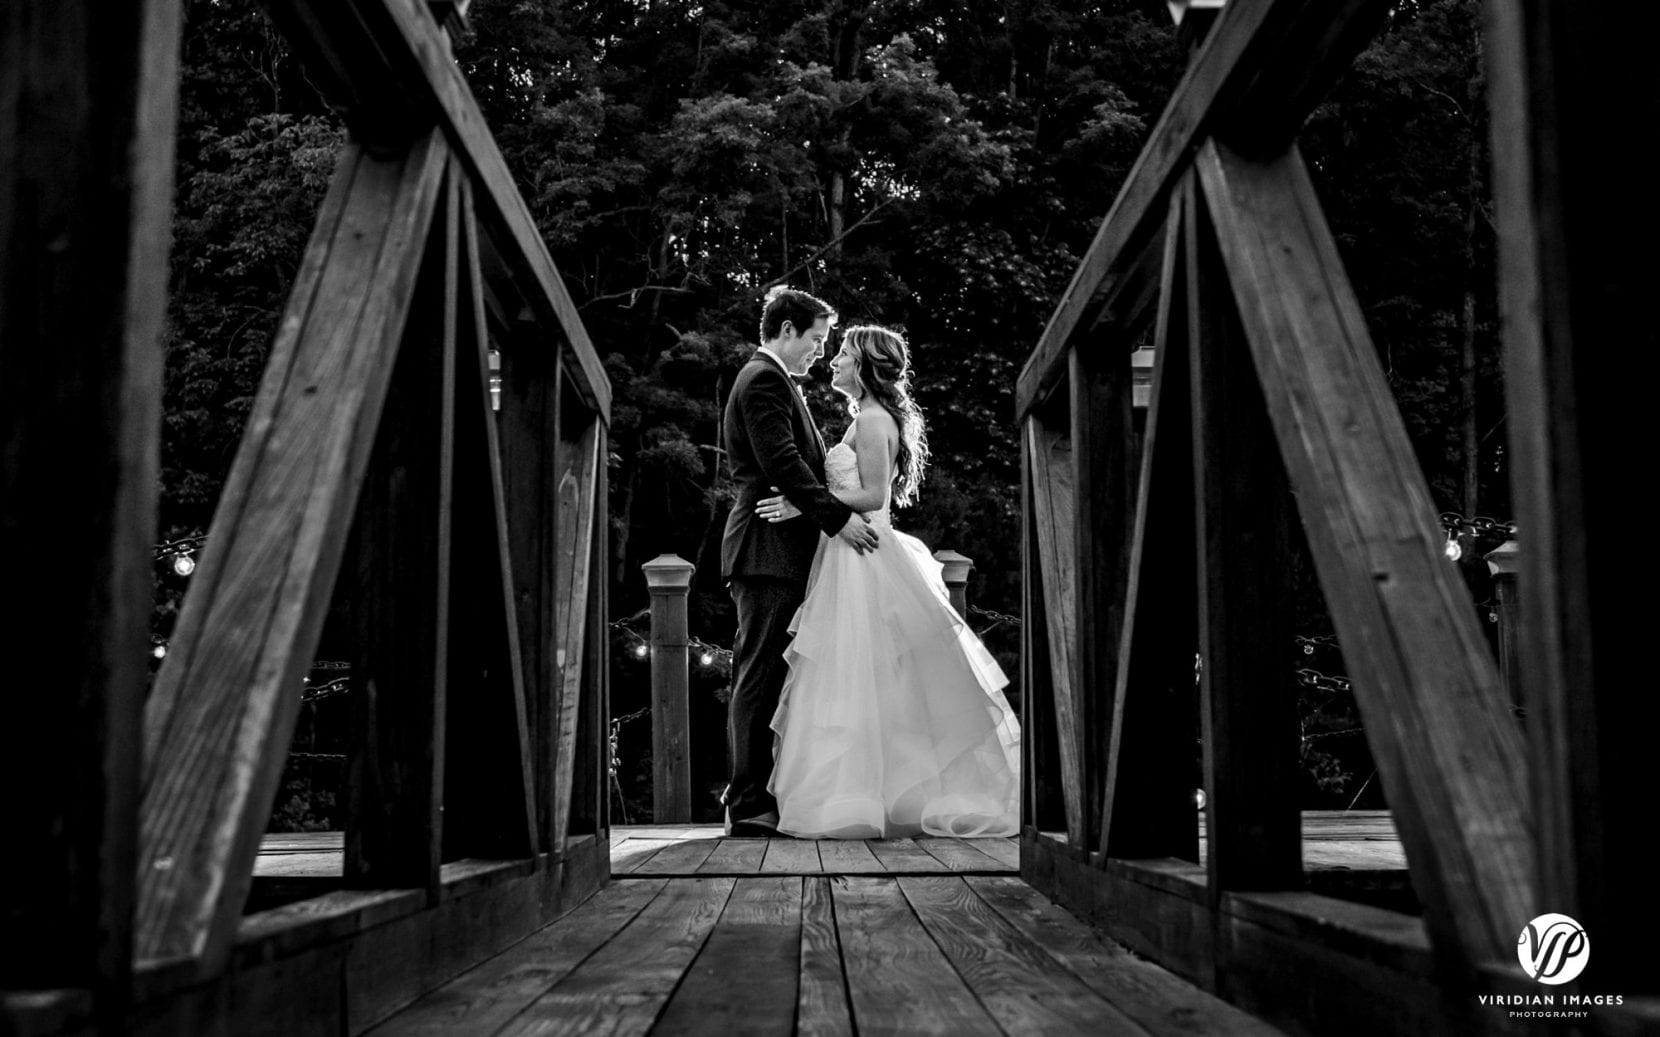 dusk photos with bride and groom on dock